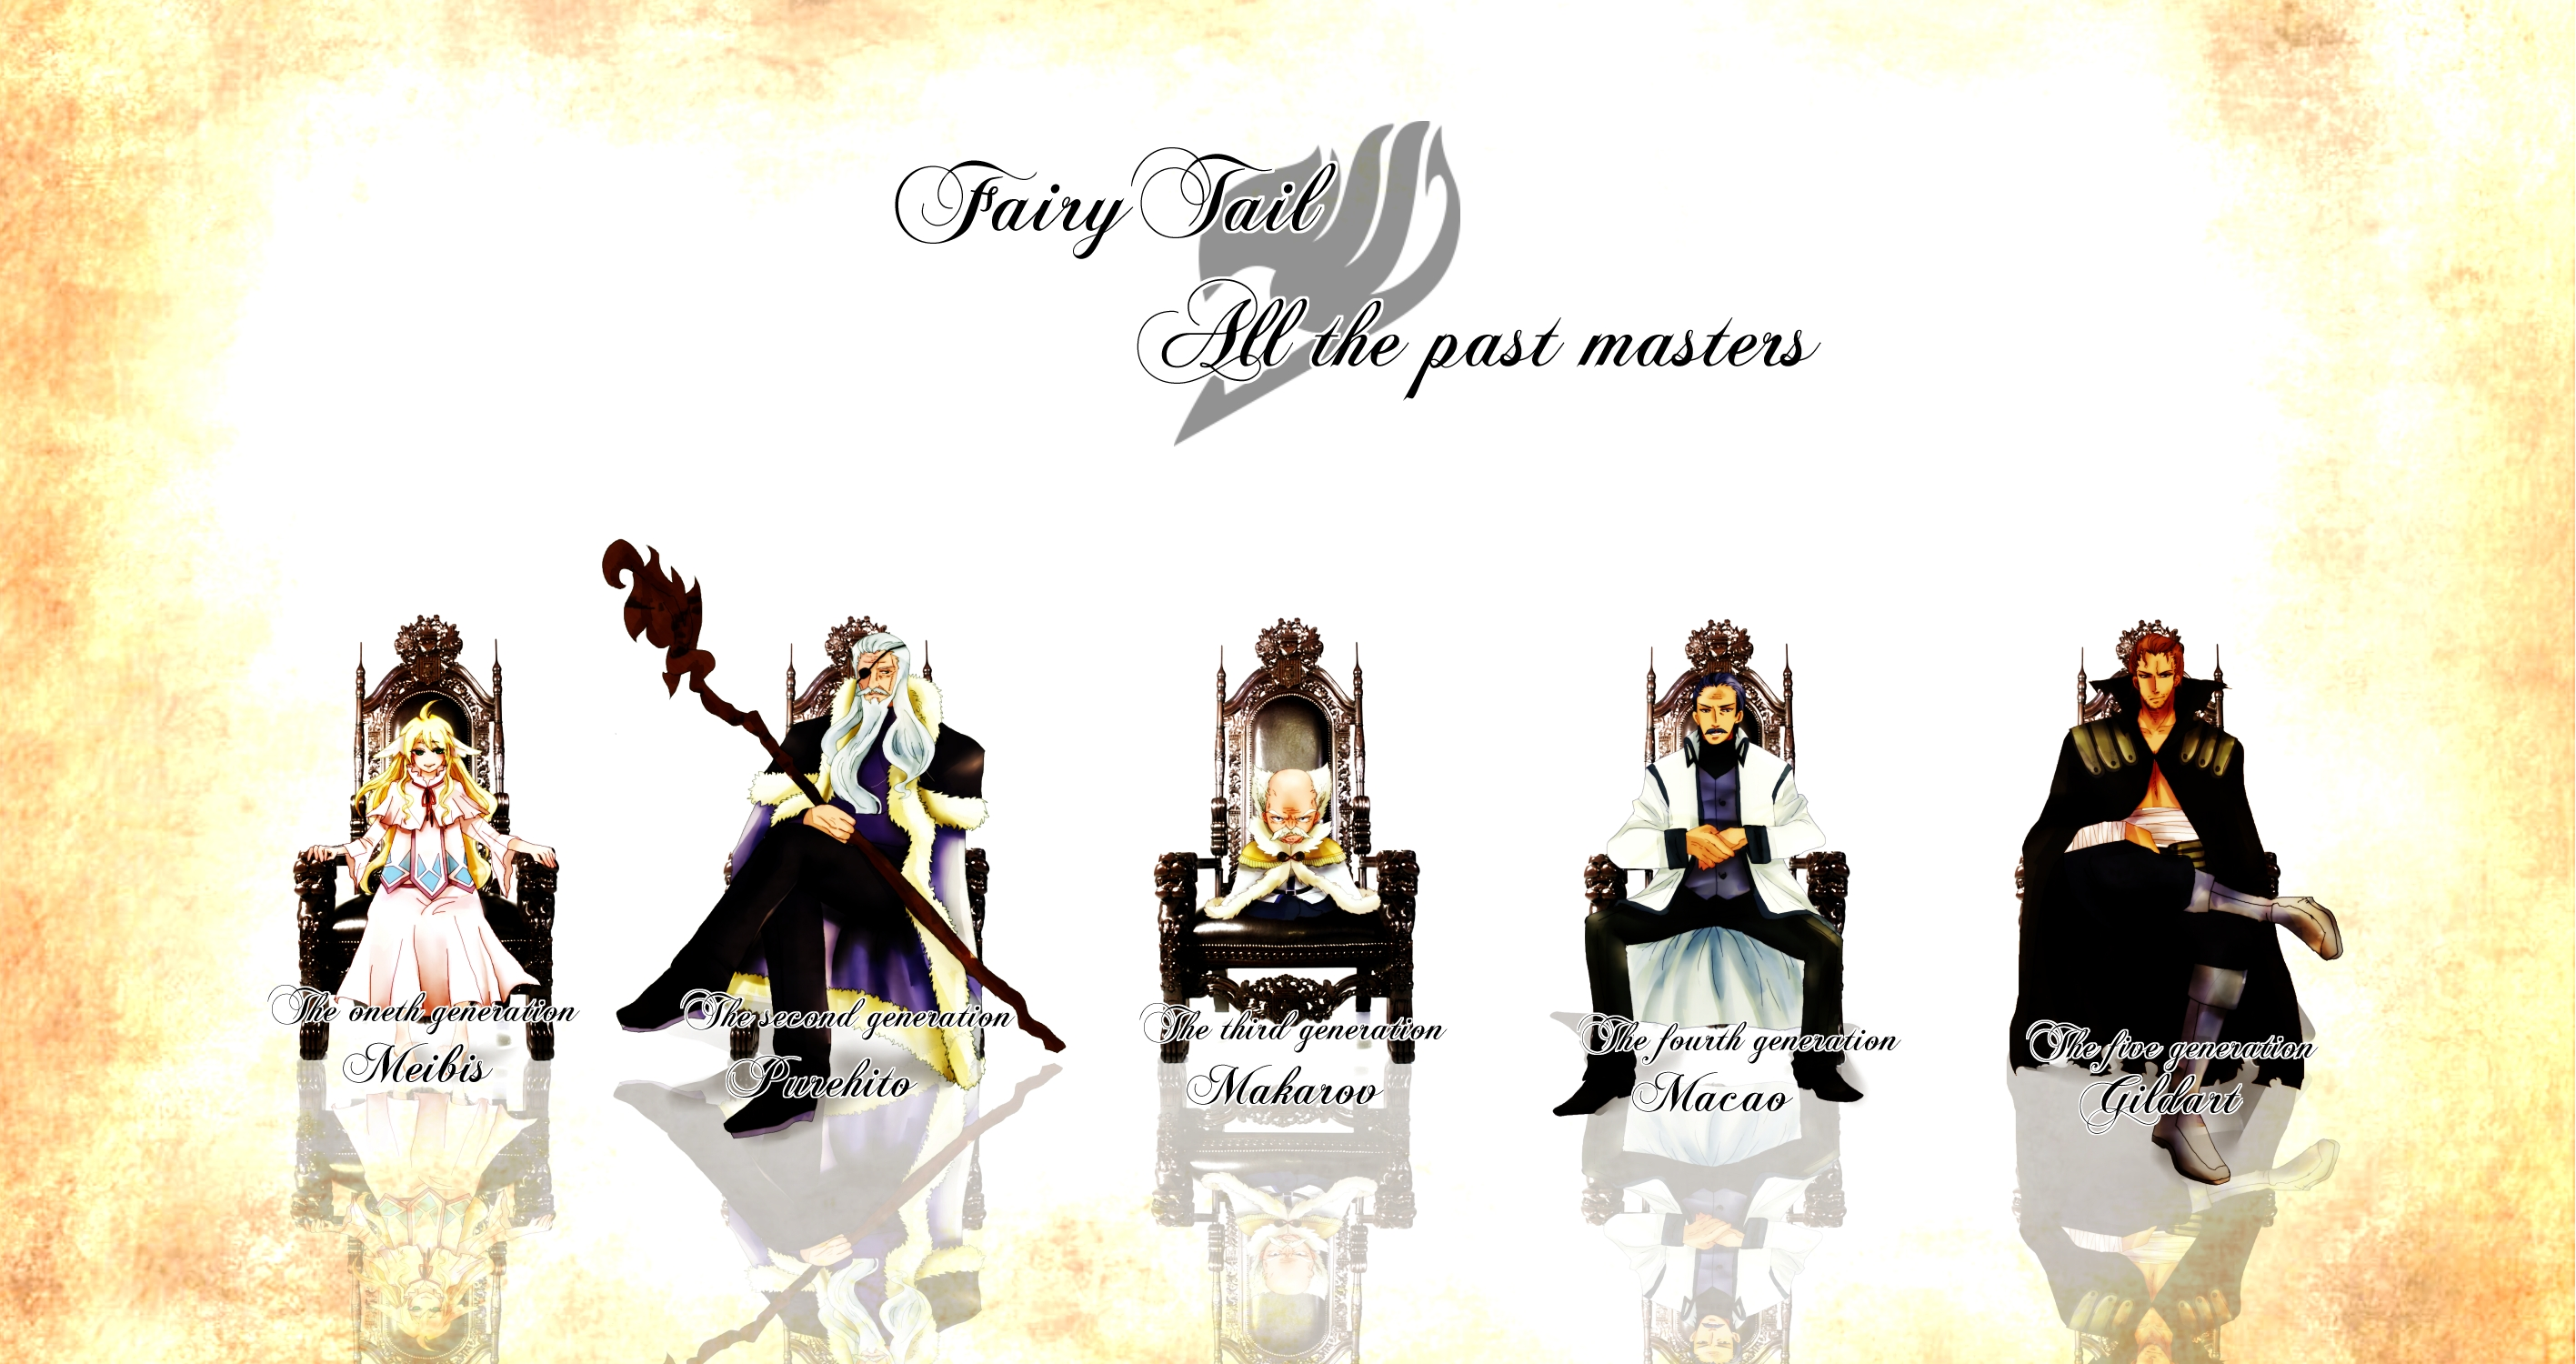 Fairy Tail - All the past Master - Wallpaper HD.jpg